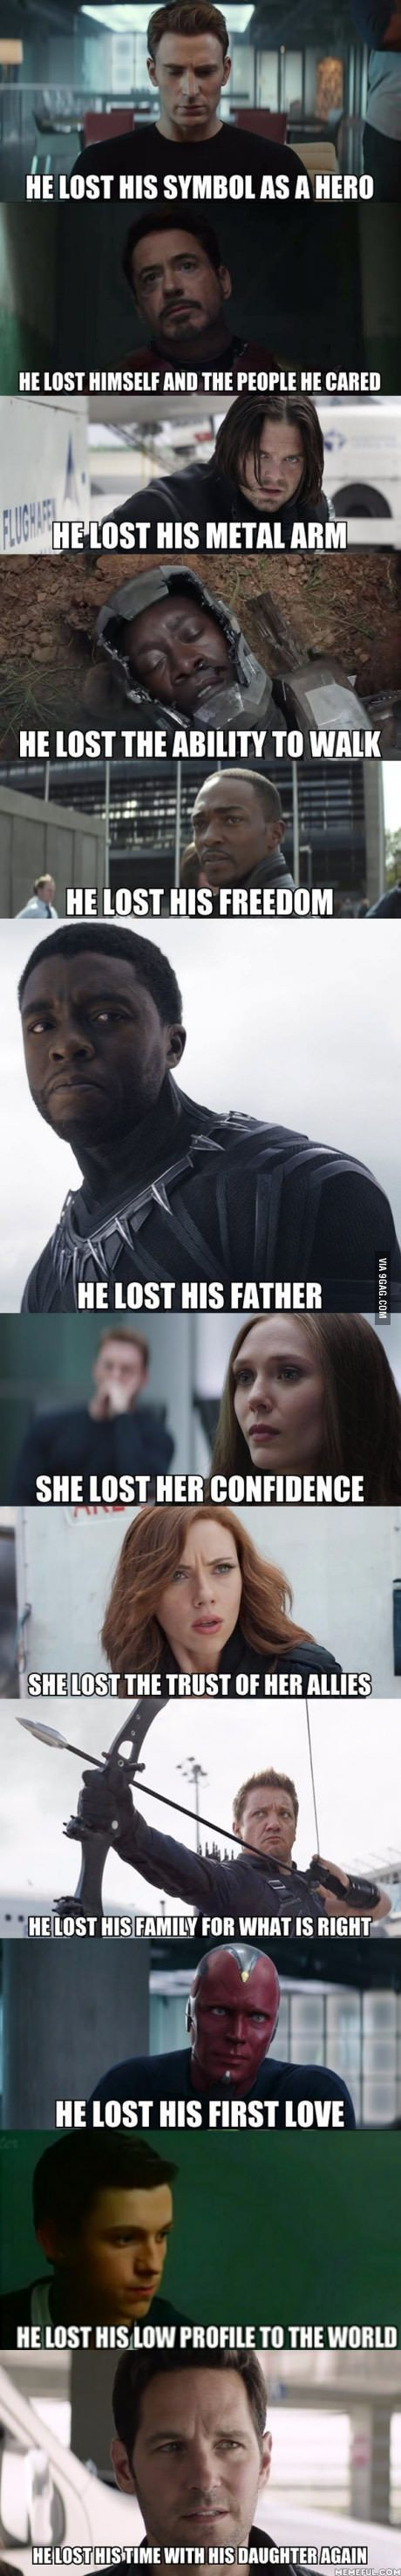 Scott how dare you. And Wanda lost far more than confidence she lost free will